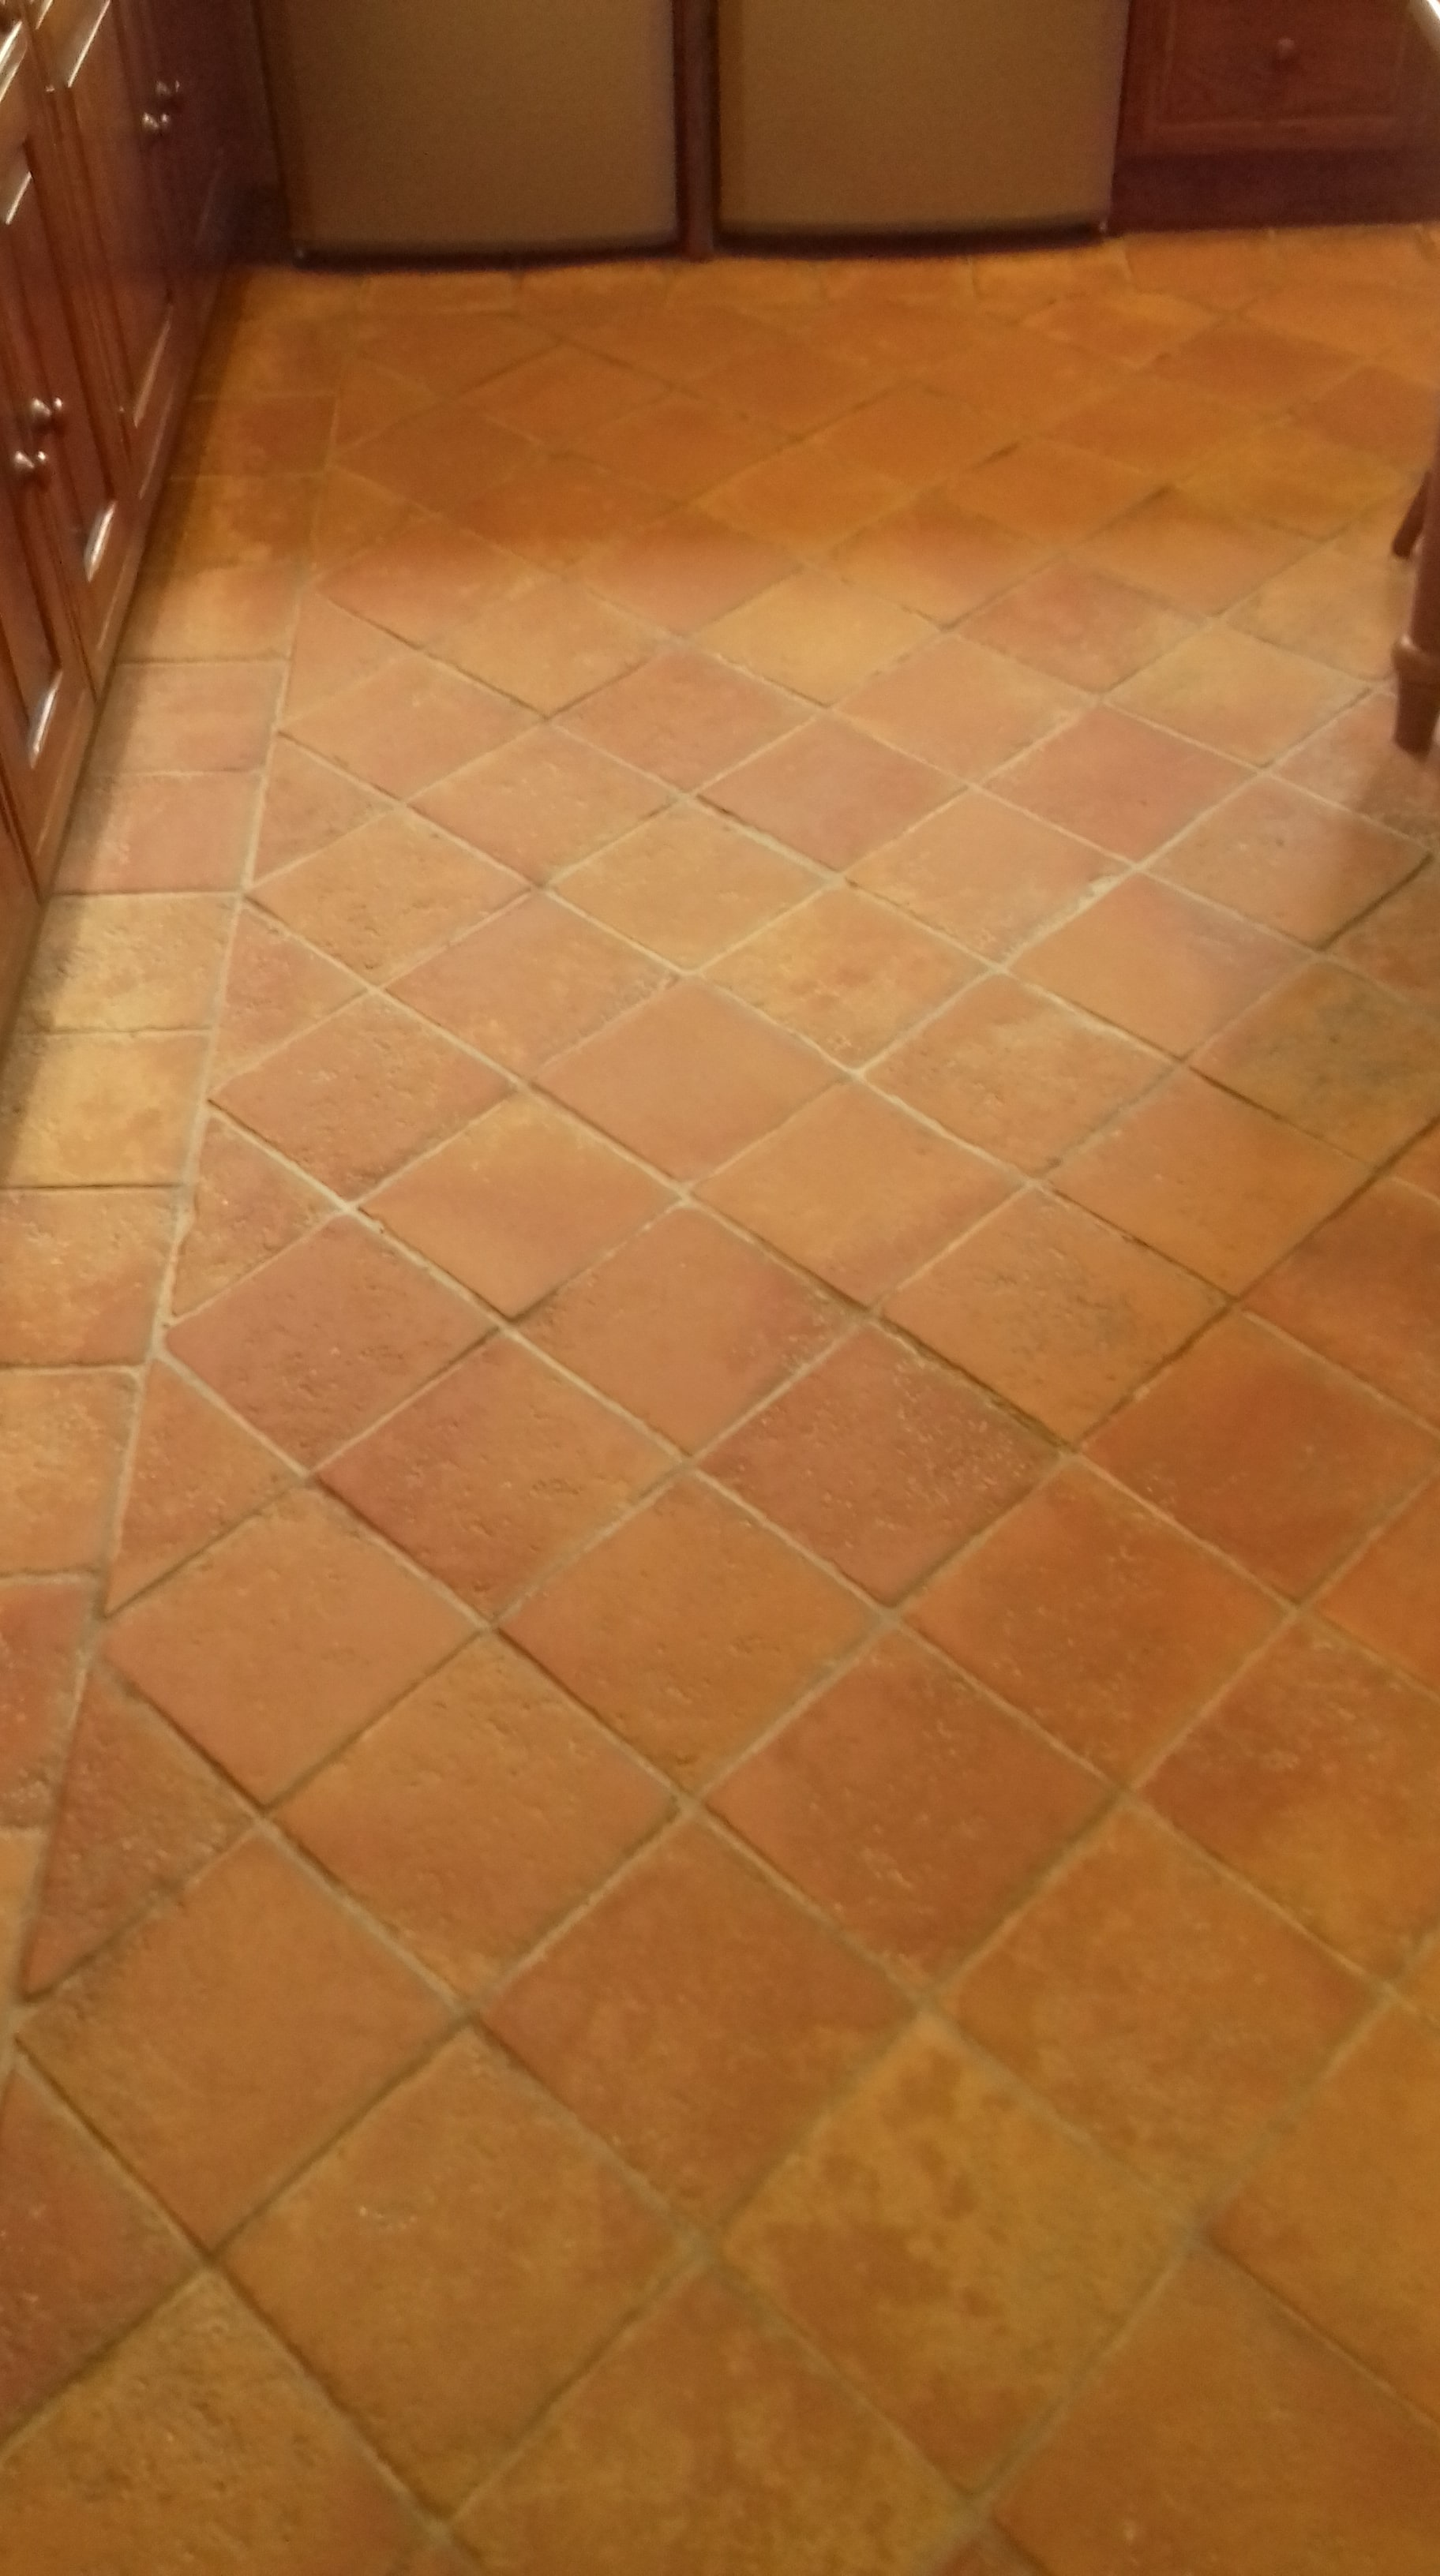 1970s Terracotta Tiled Floor After Restoration Chilham Cottage